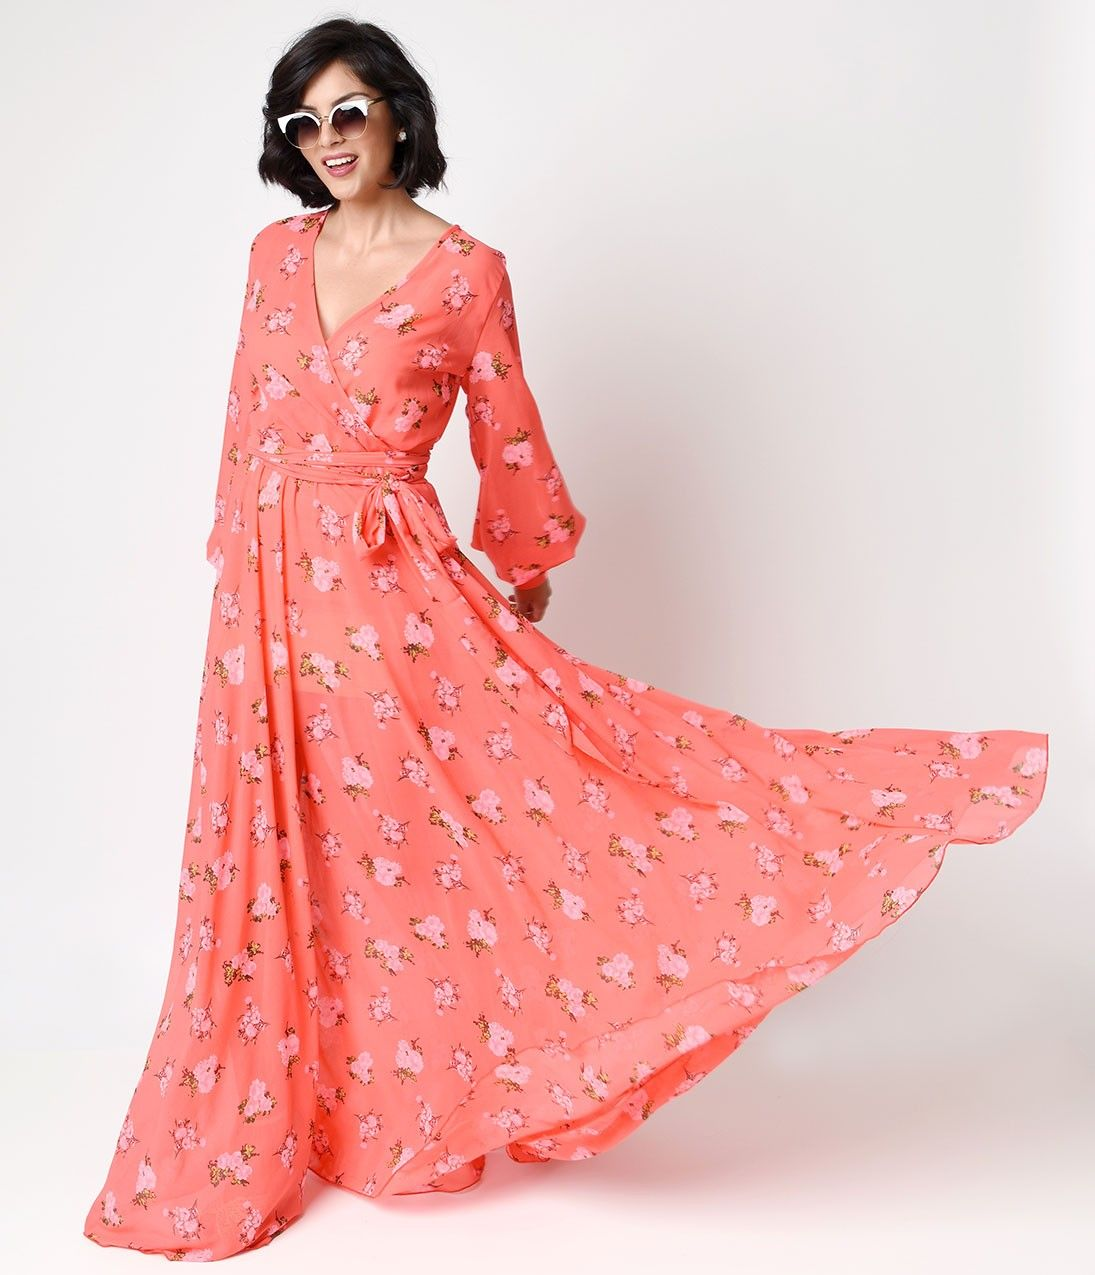 S style coral rose floral long sleeve maxi dress my style